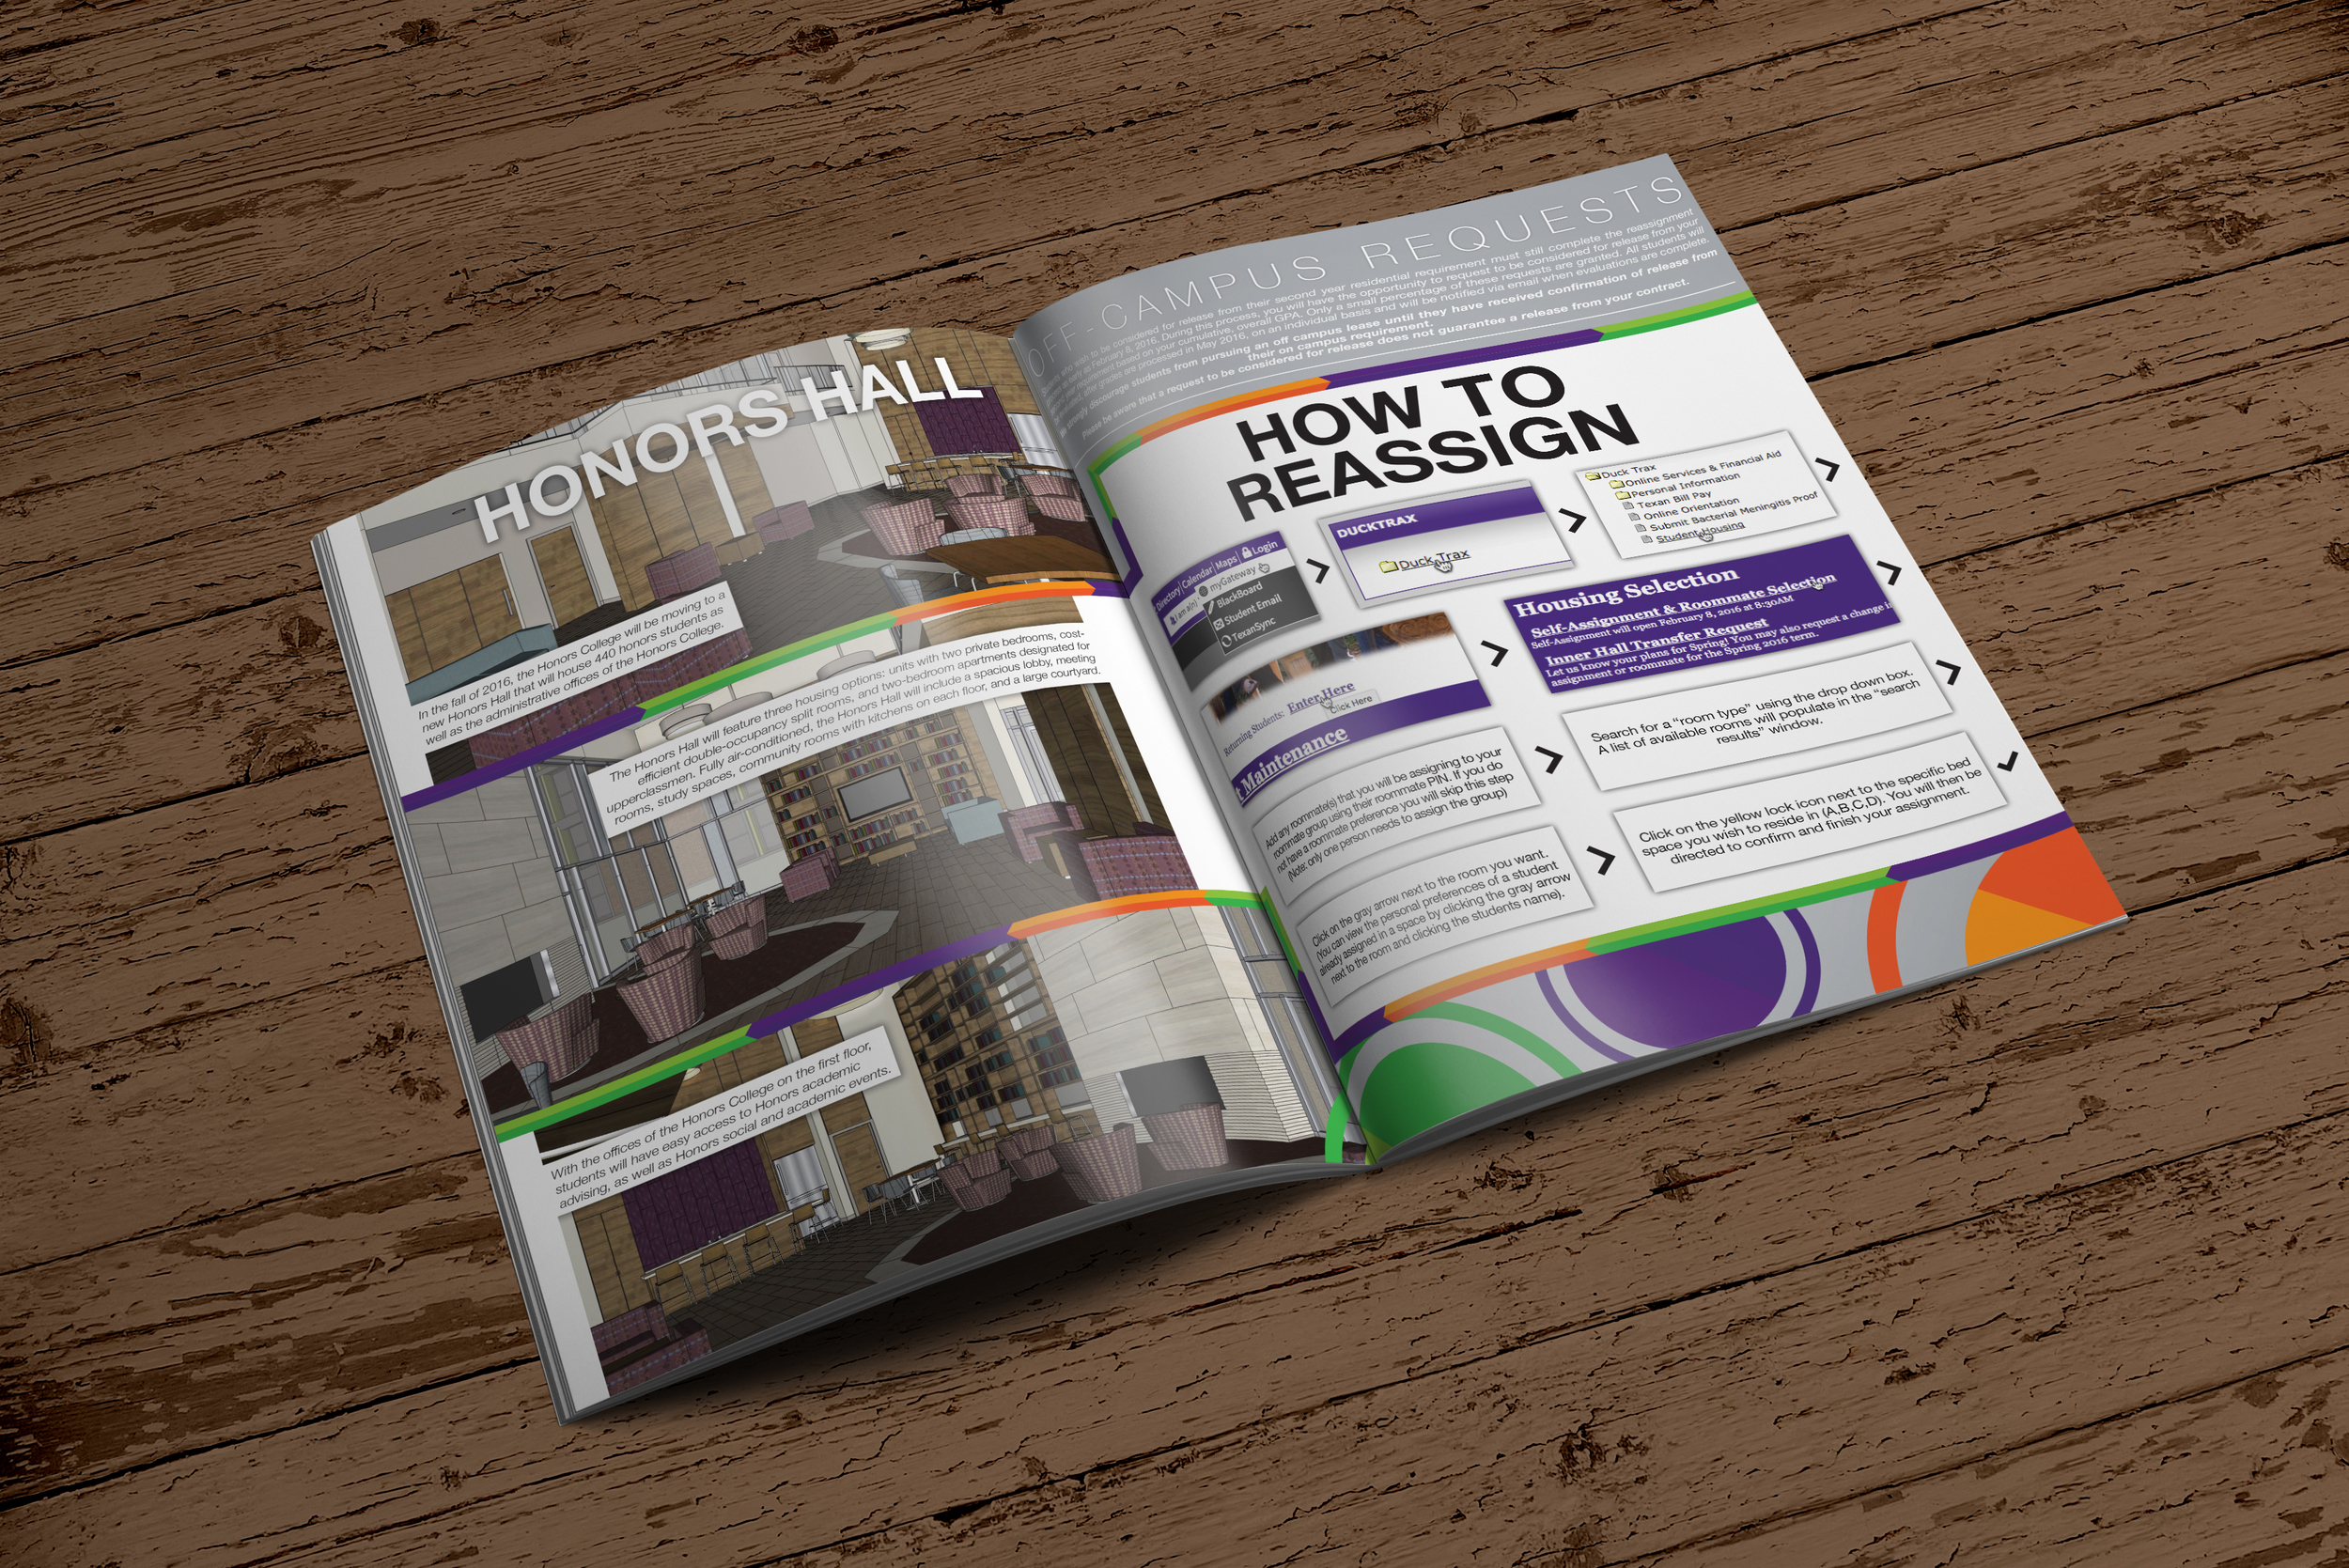 First 2 pages – Basic renderings of a dorm and instruction on how to work the website